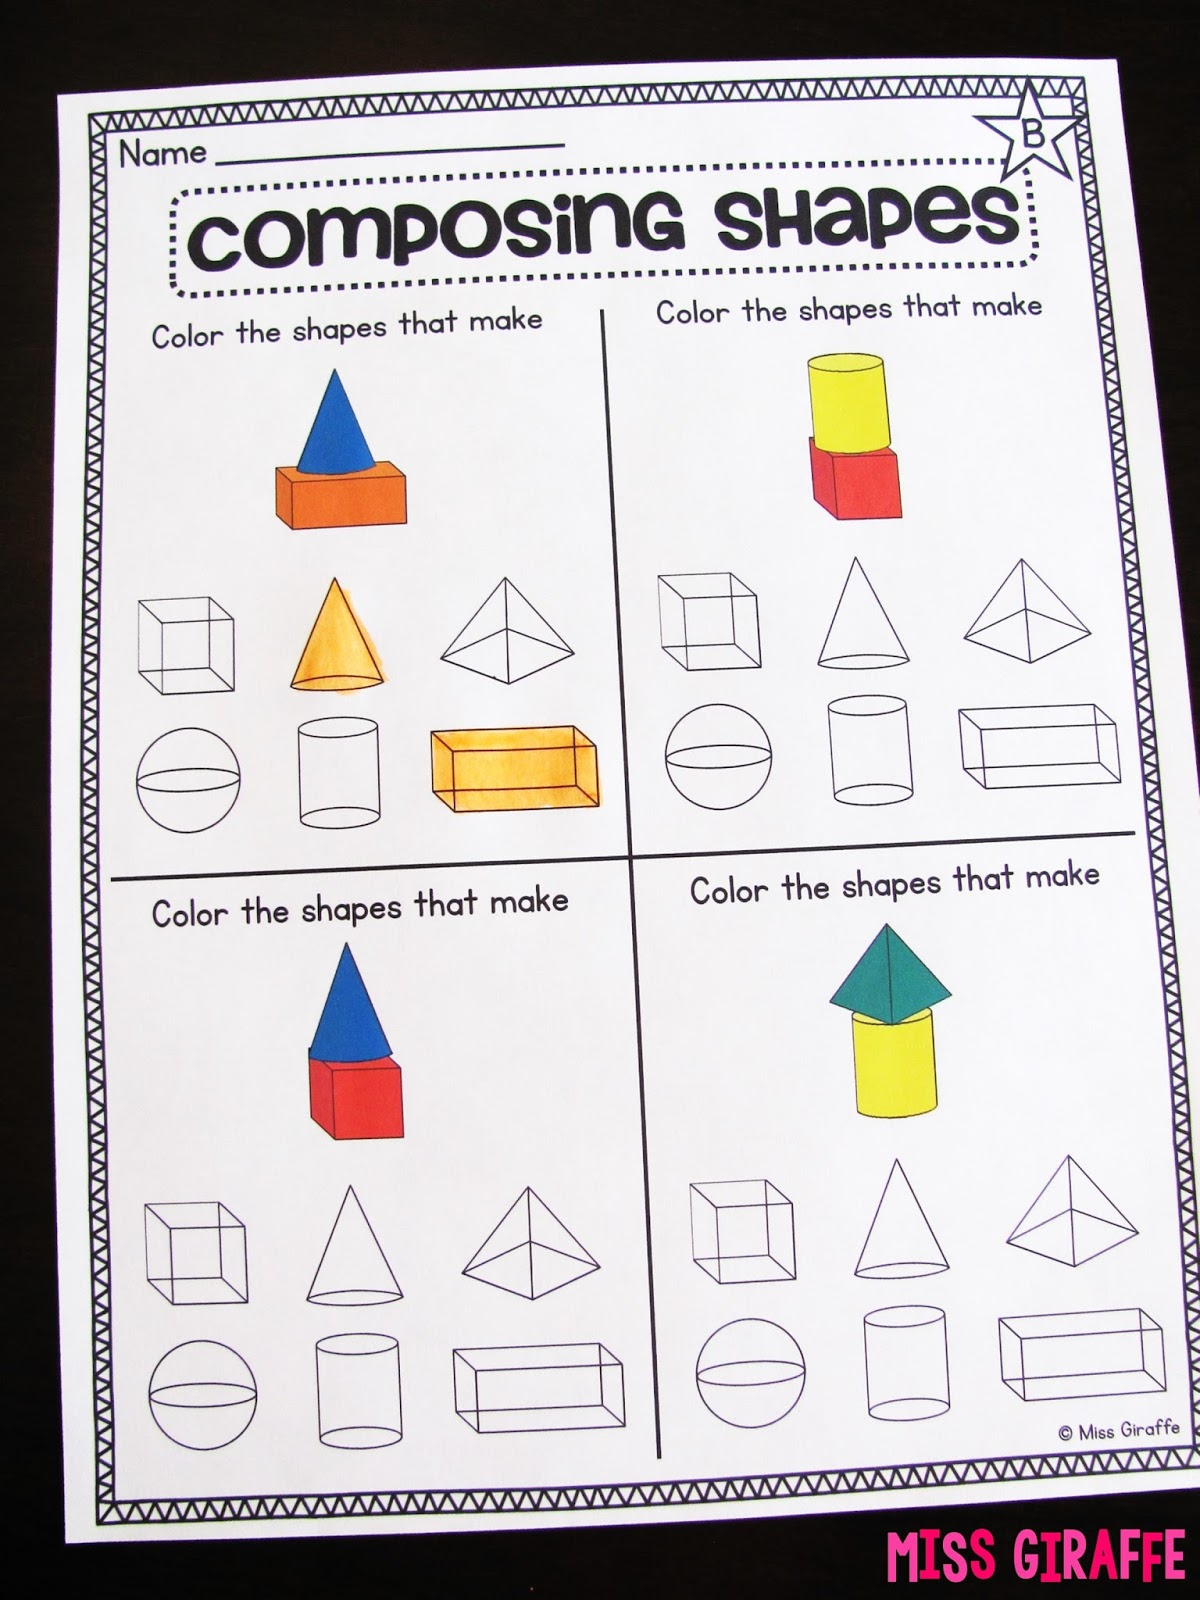 Miss Giraffes Class Composing Shapes in 1st Grade – 2 Dimensional Shapes Worksheets